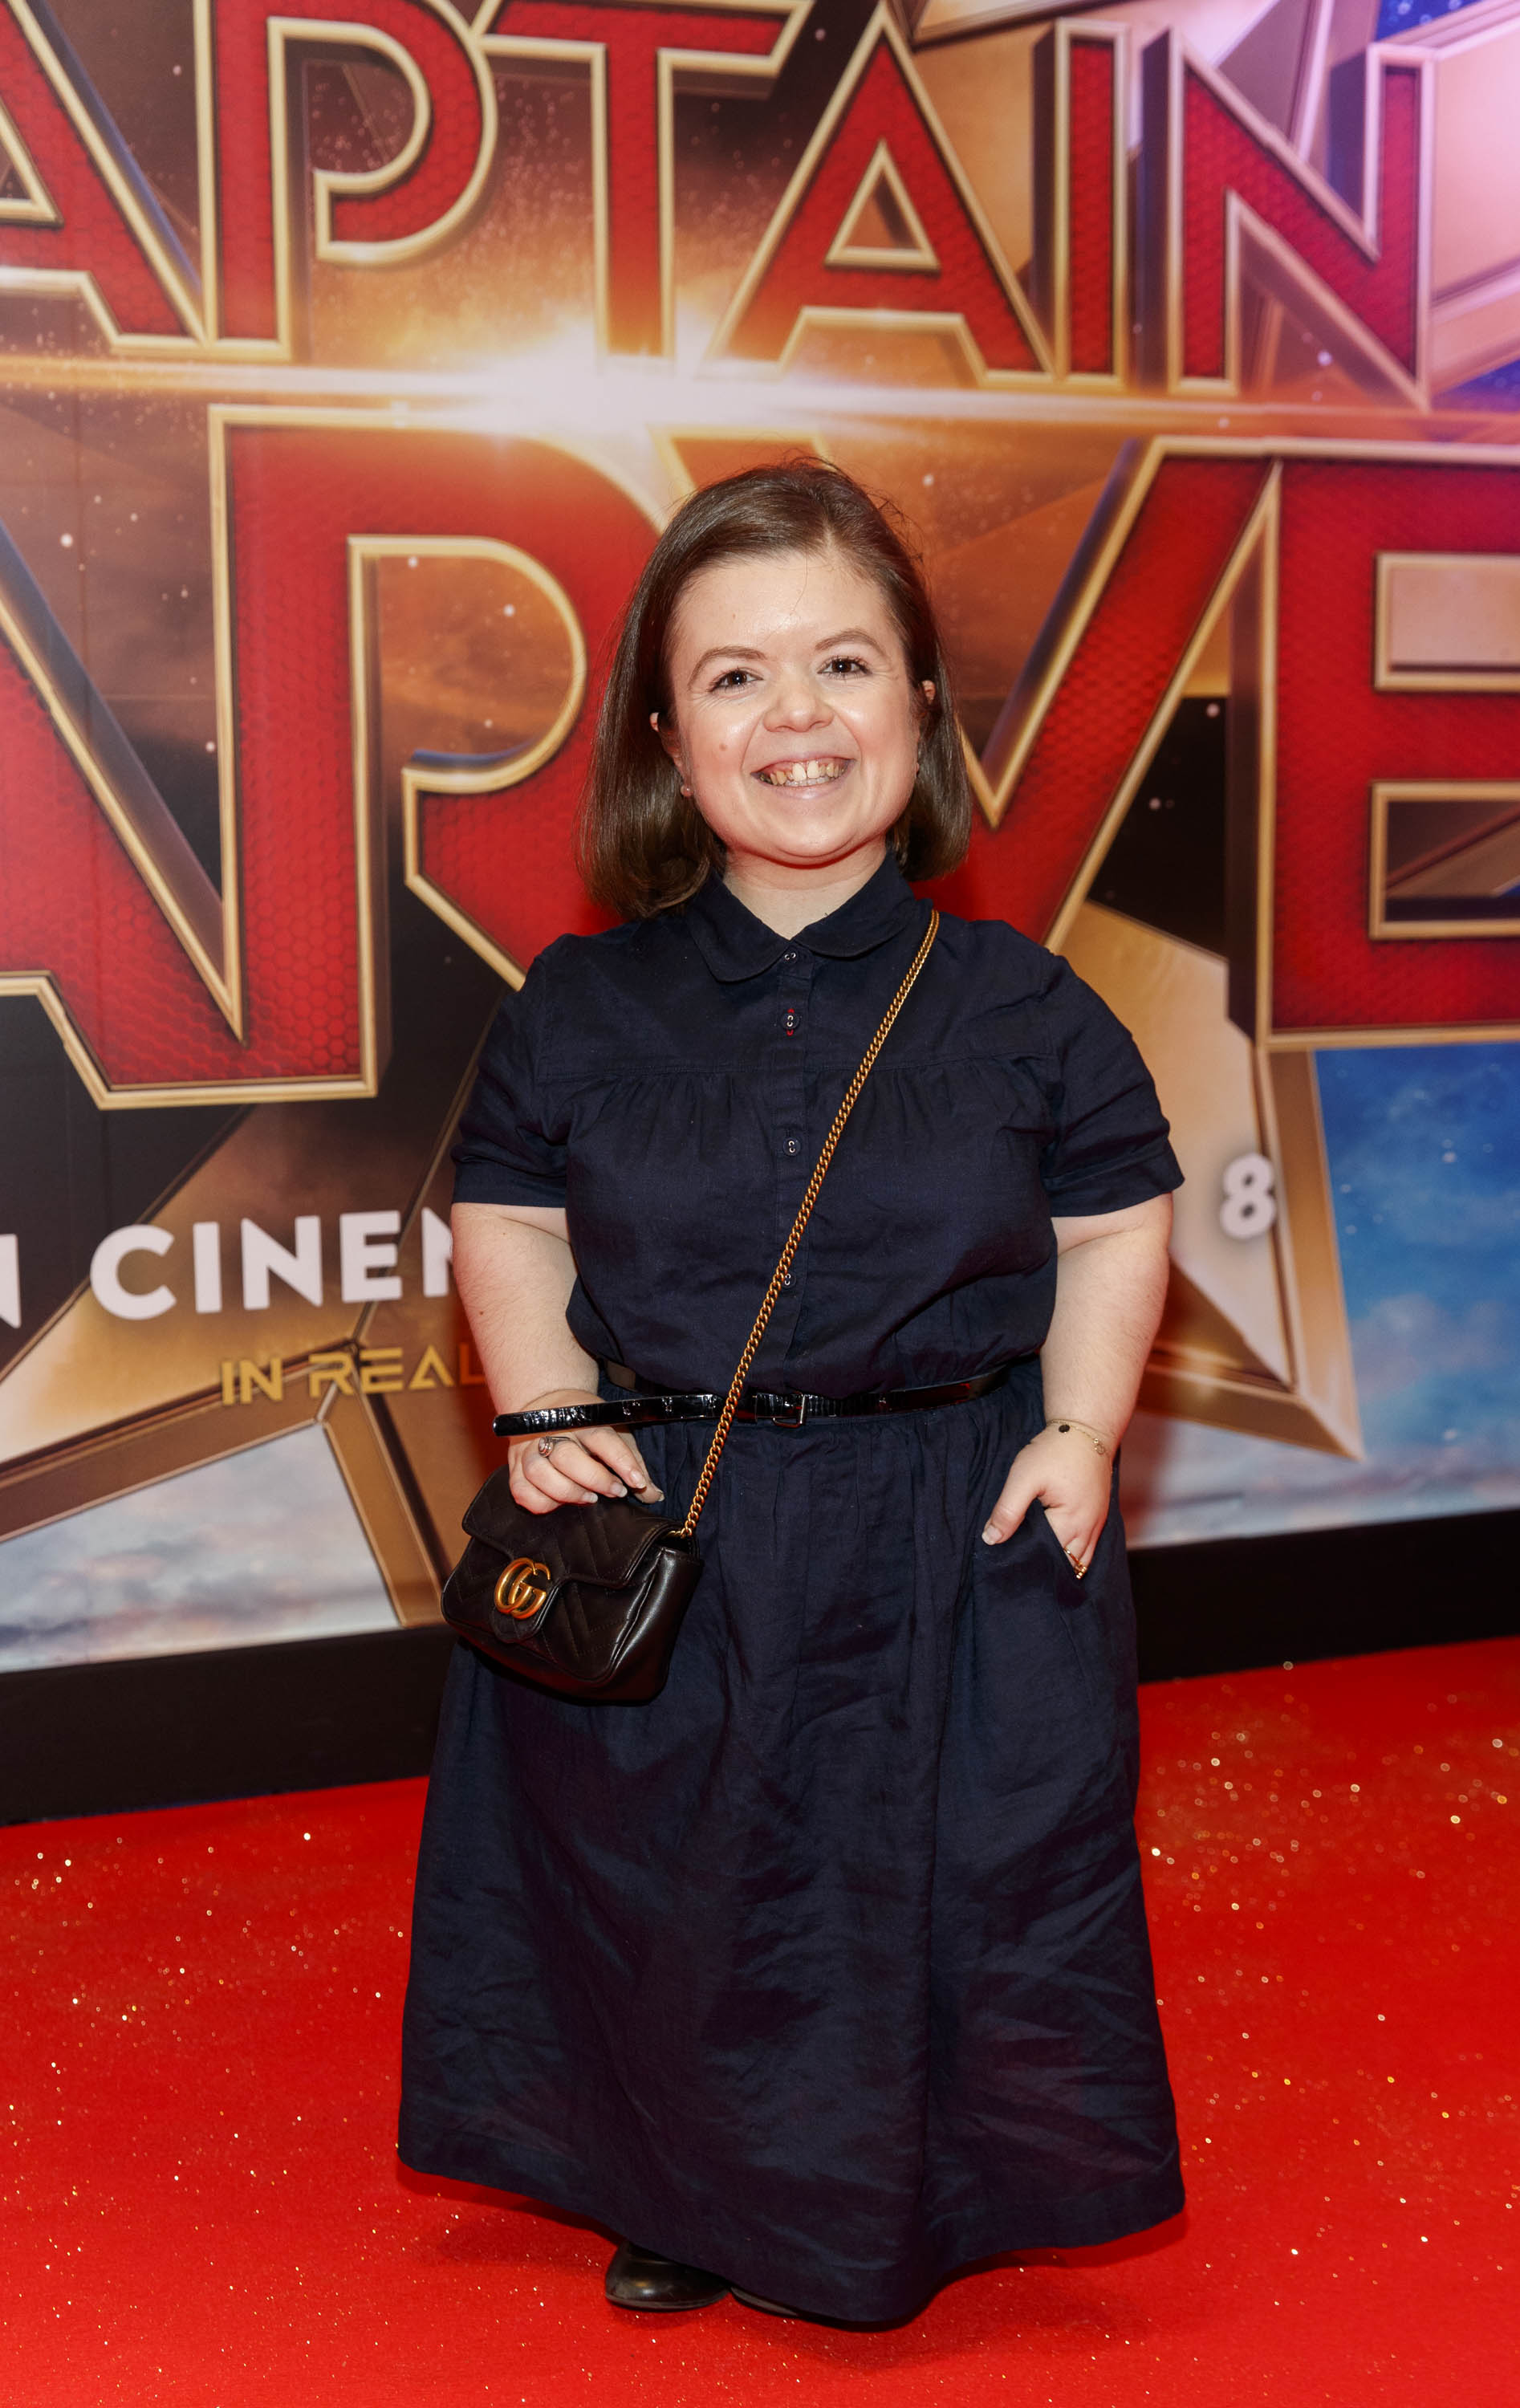 Sinead Burke pictured at a special preview screening of CAPTAIN MARVEL in Cineworld Dublin. Picture by: Andres Poveda